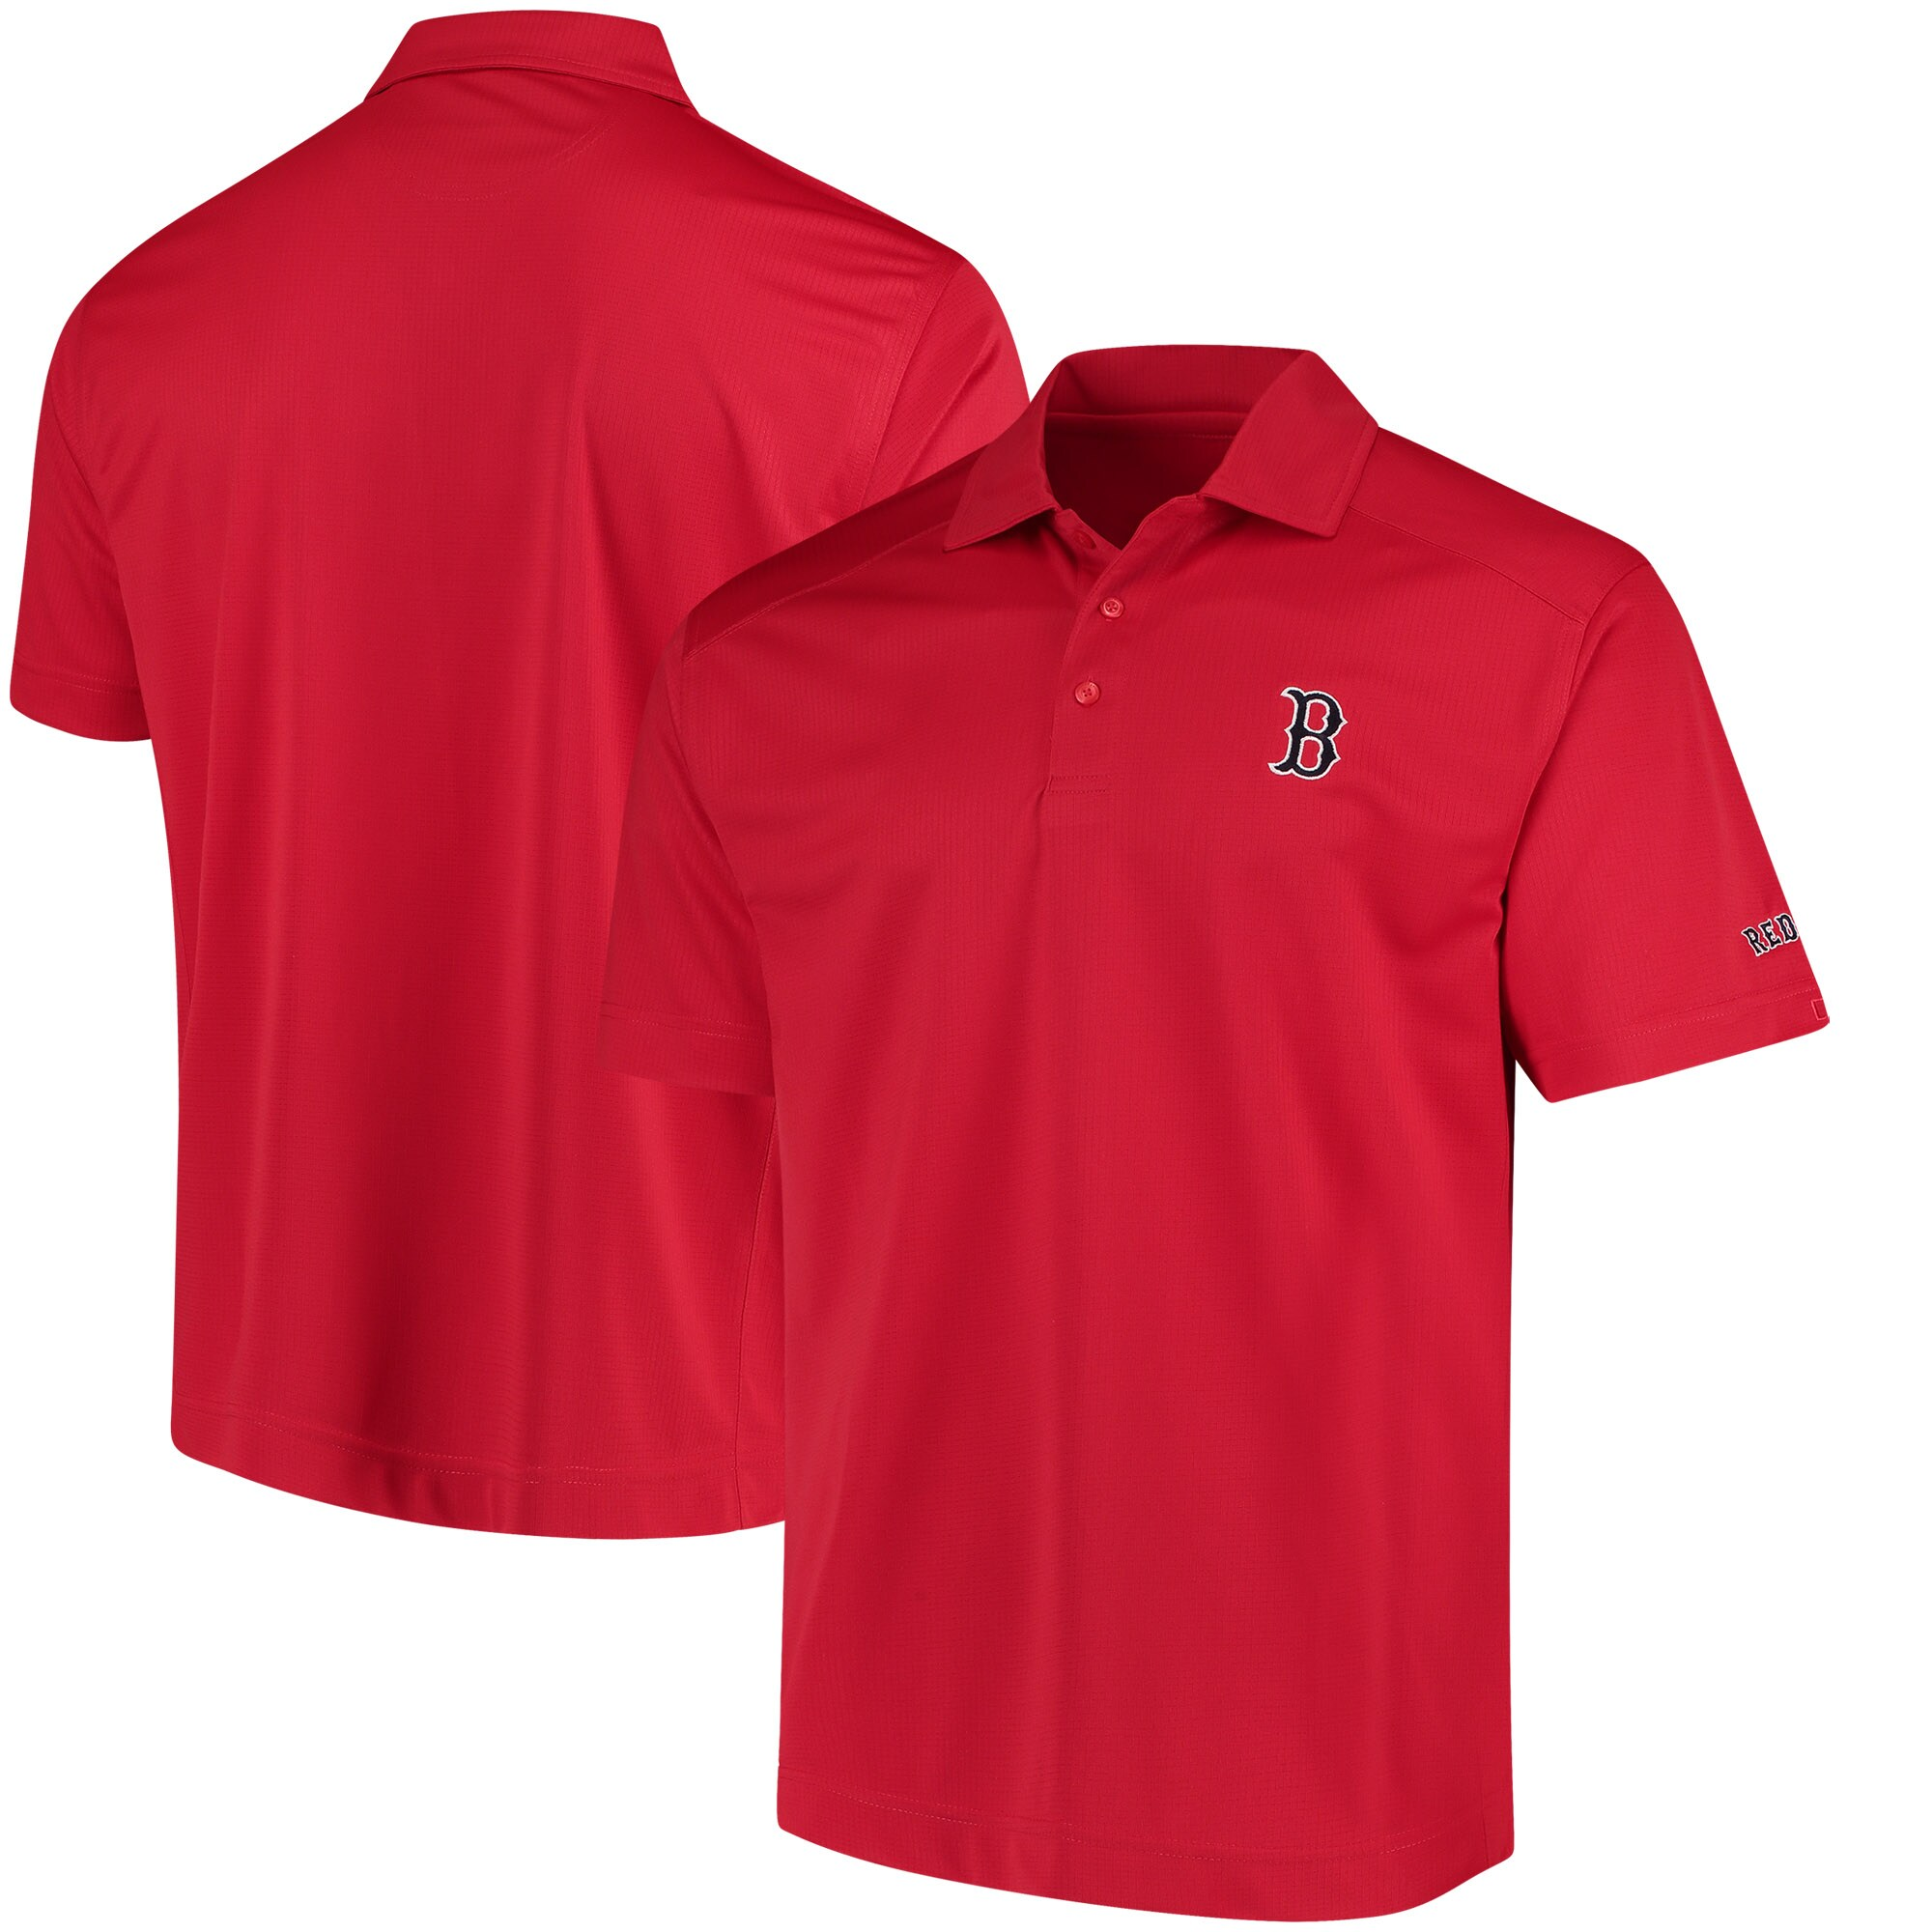 Boston Red Sox Cutter & Buck Genre Polo with Sleeve Logo - Red